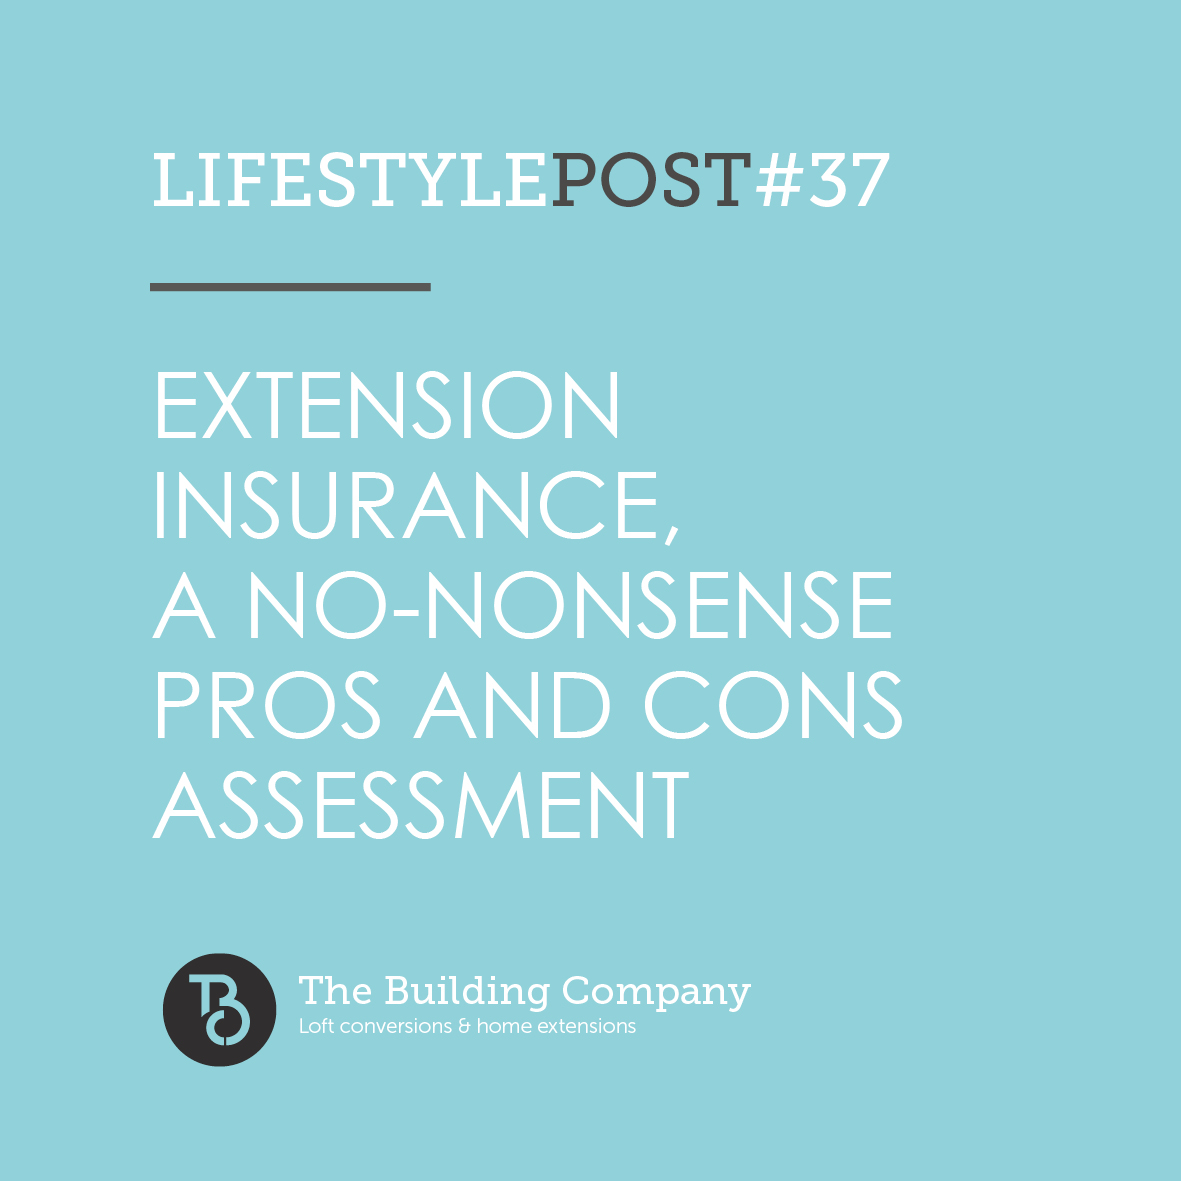 Extension insurance in North London – a no-nonsense pros and cons assessment